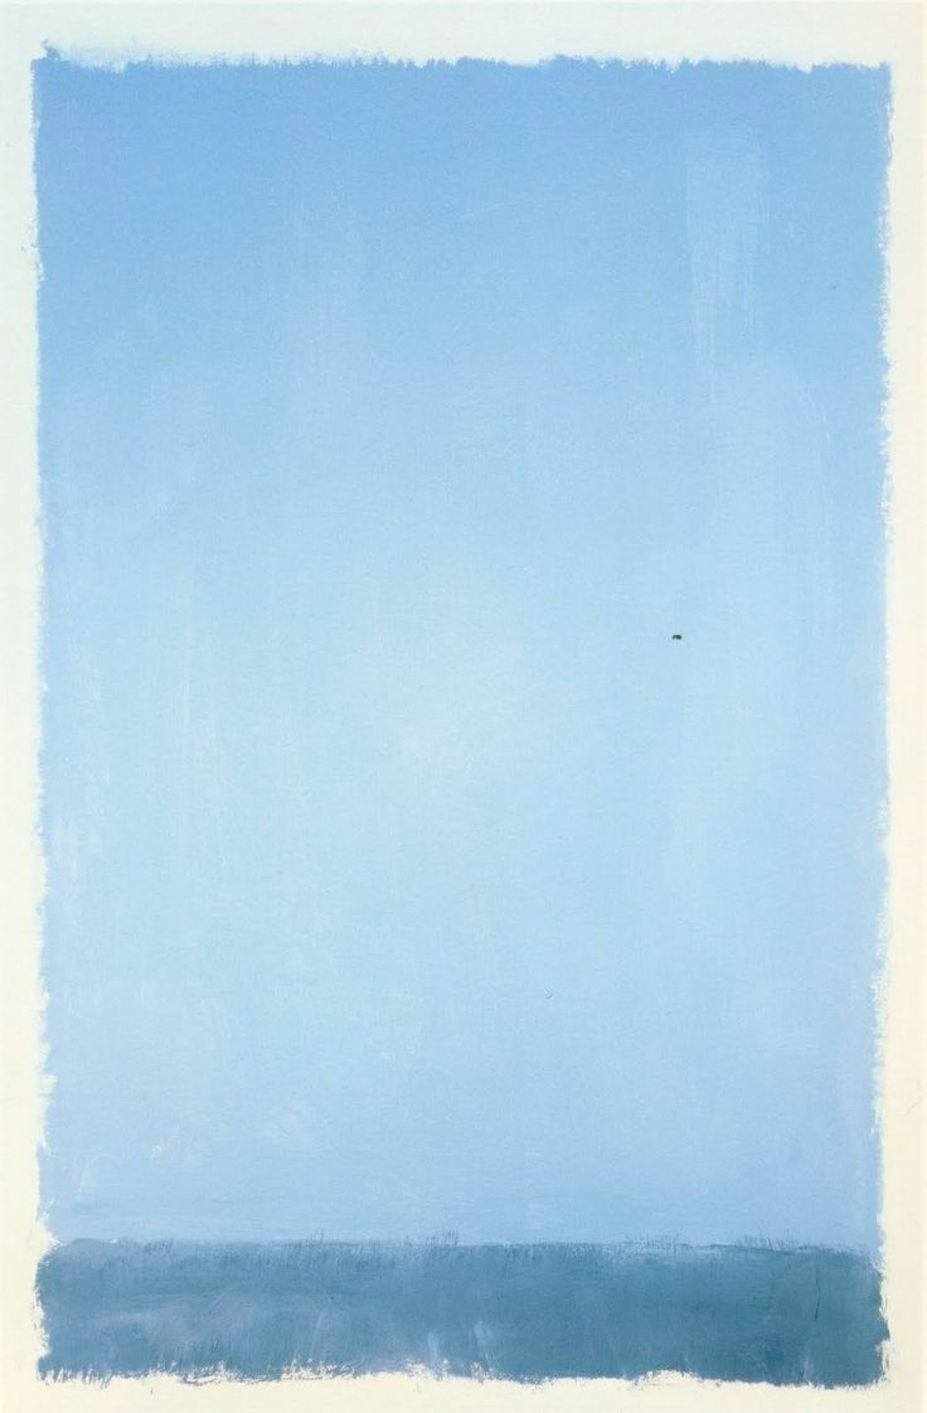 Mark Rothko. Untitled. 1969.